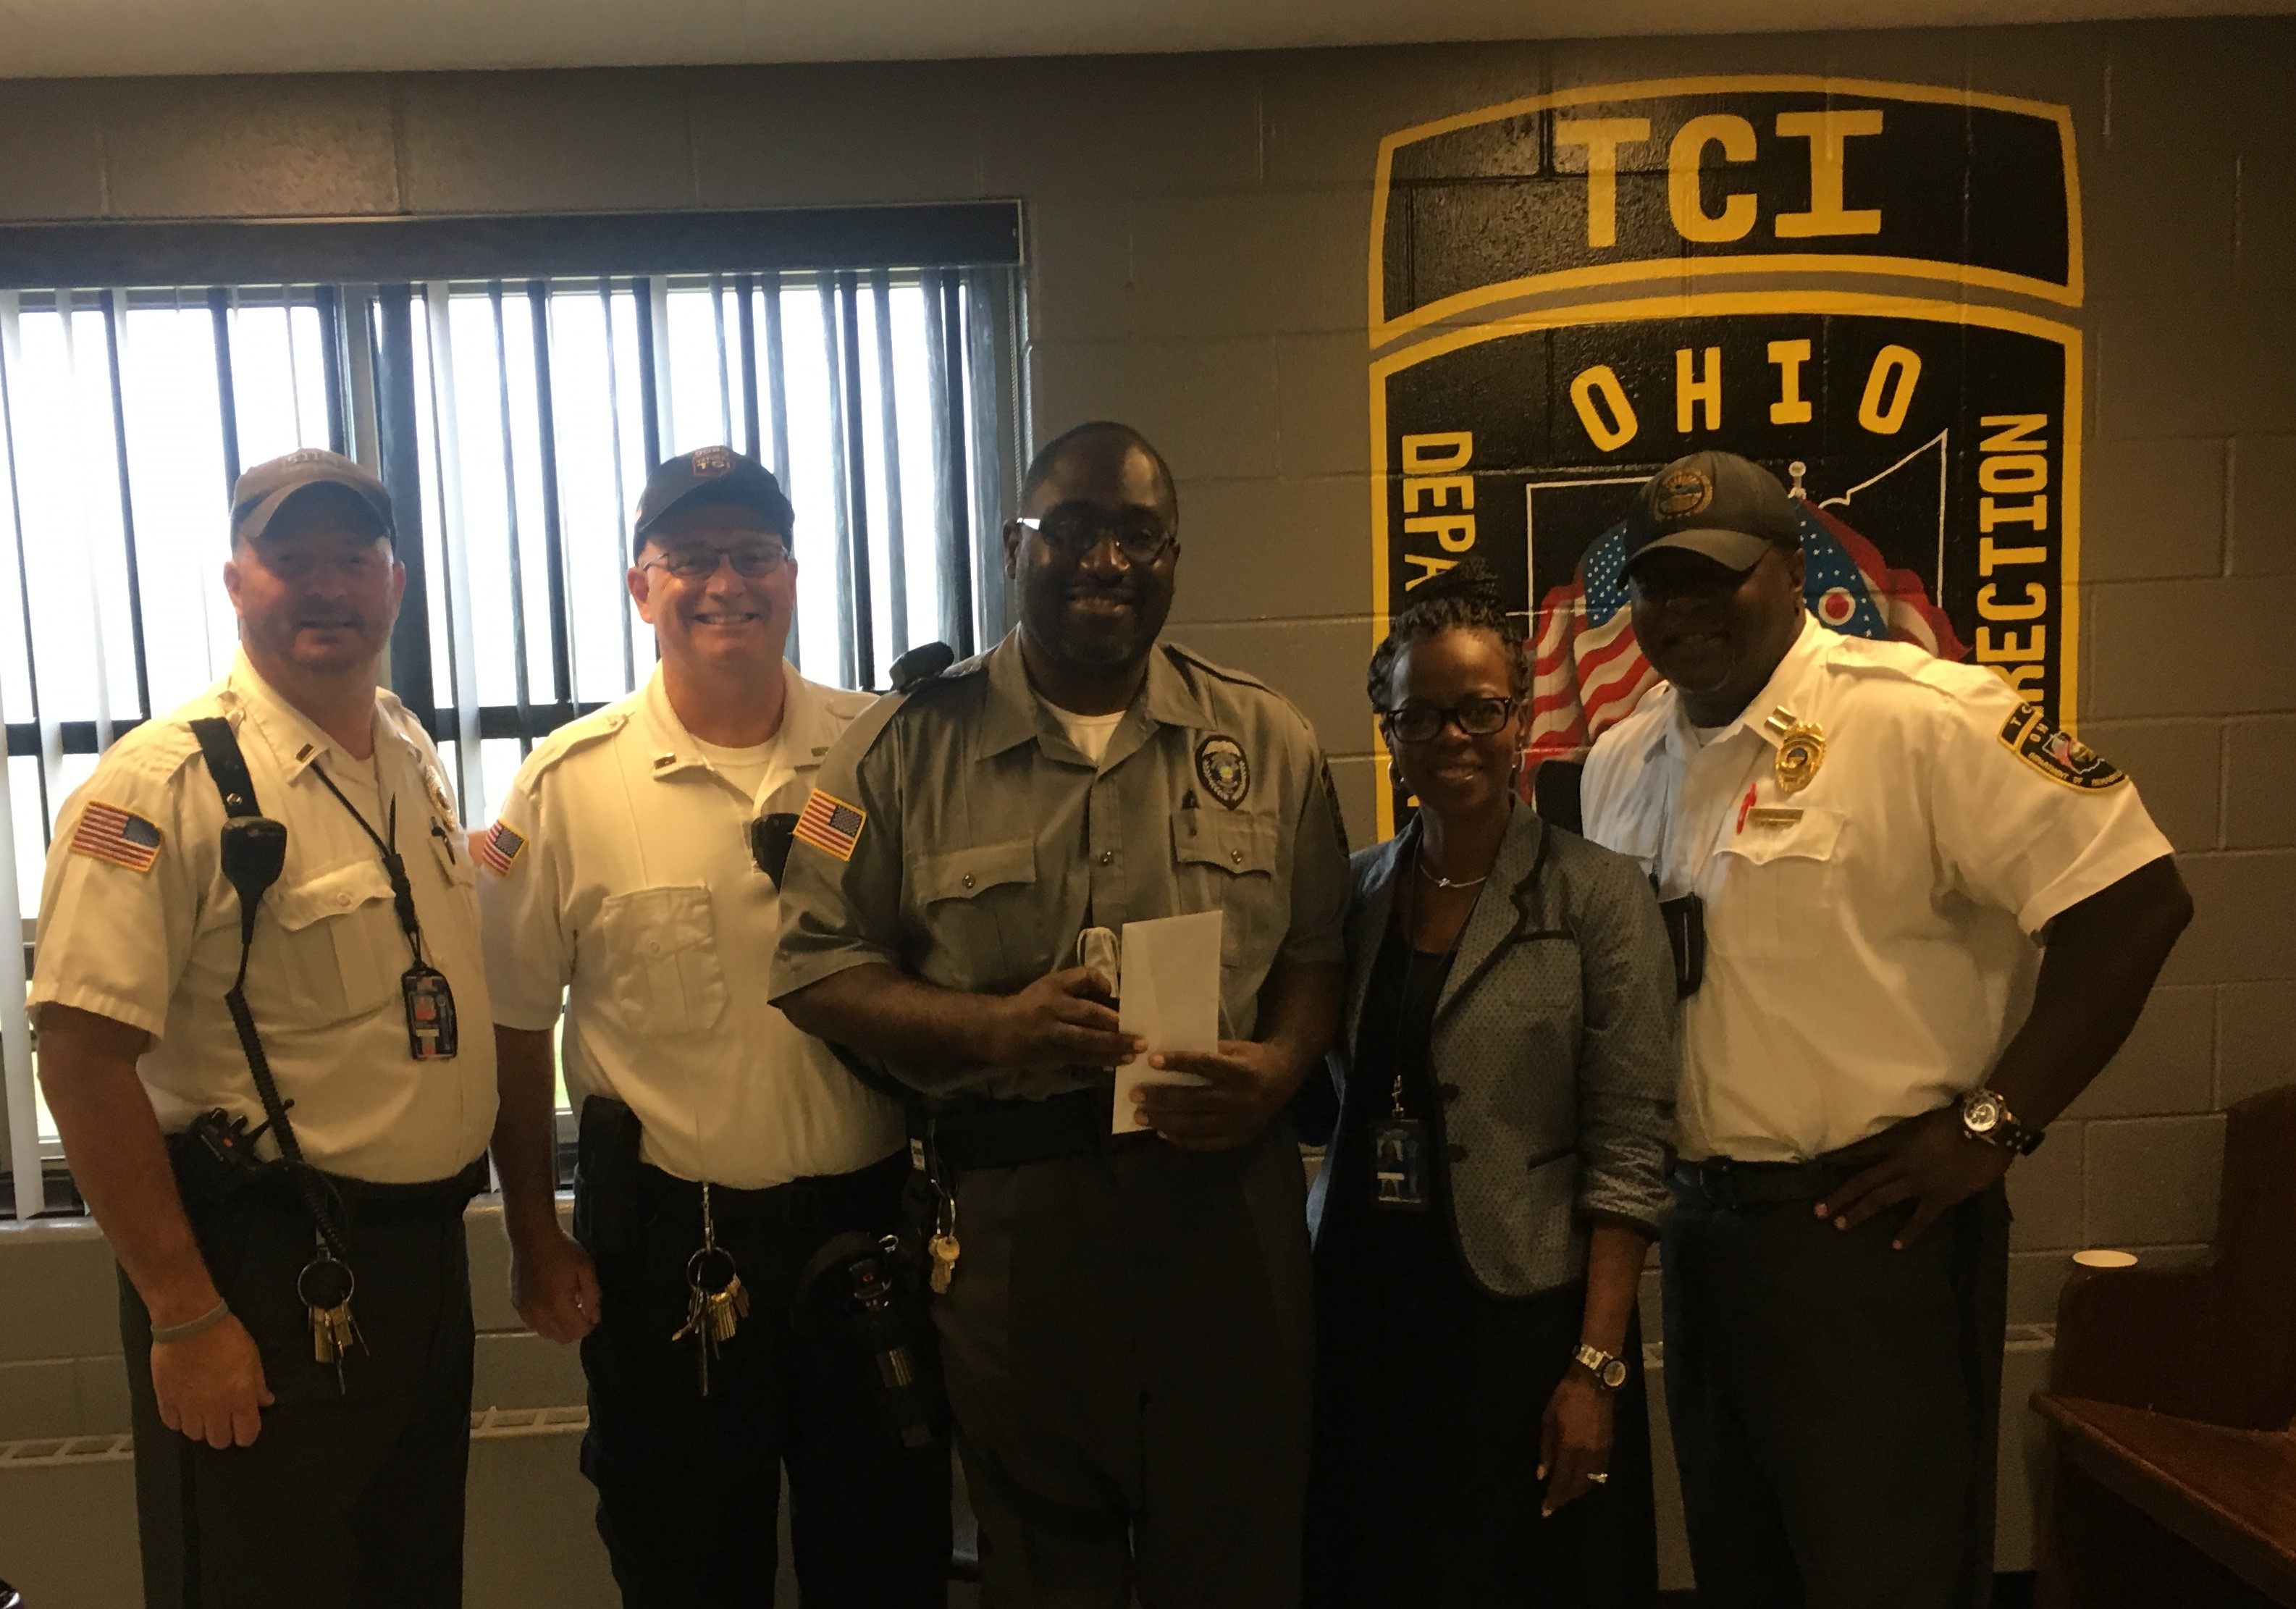 2018 Corrections Officer of the Year - Hal Green